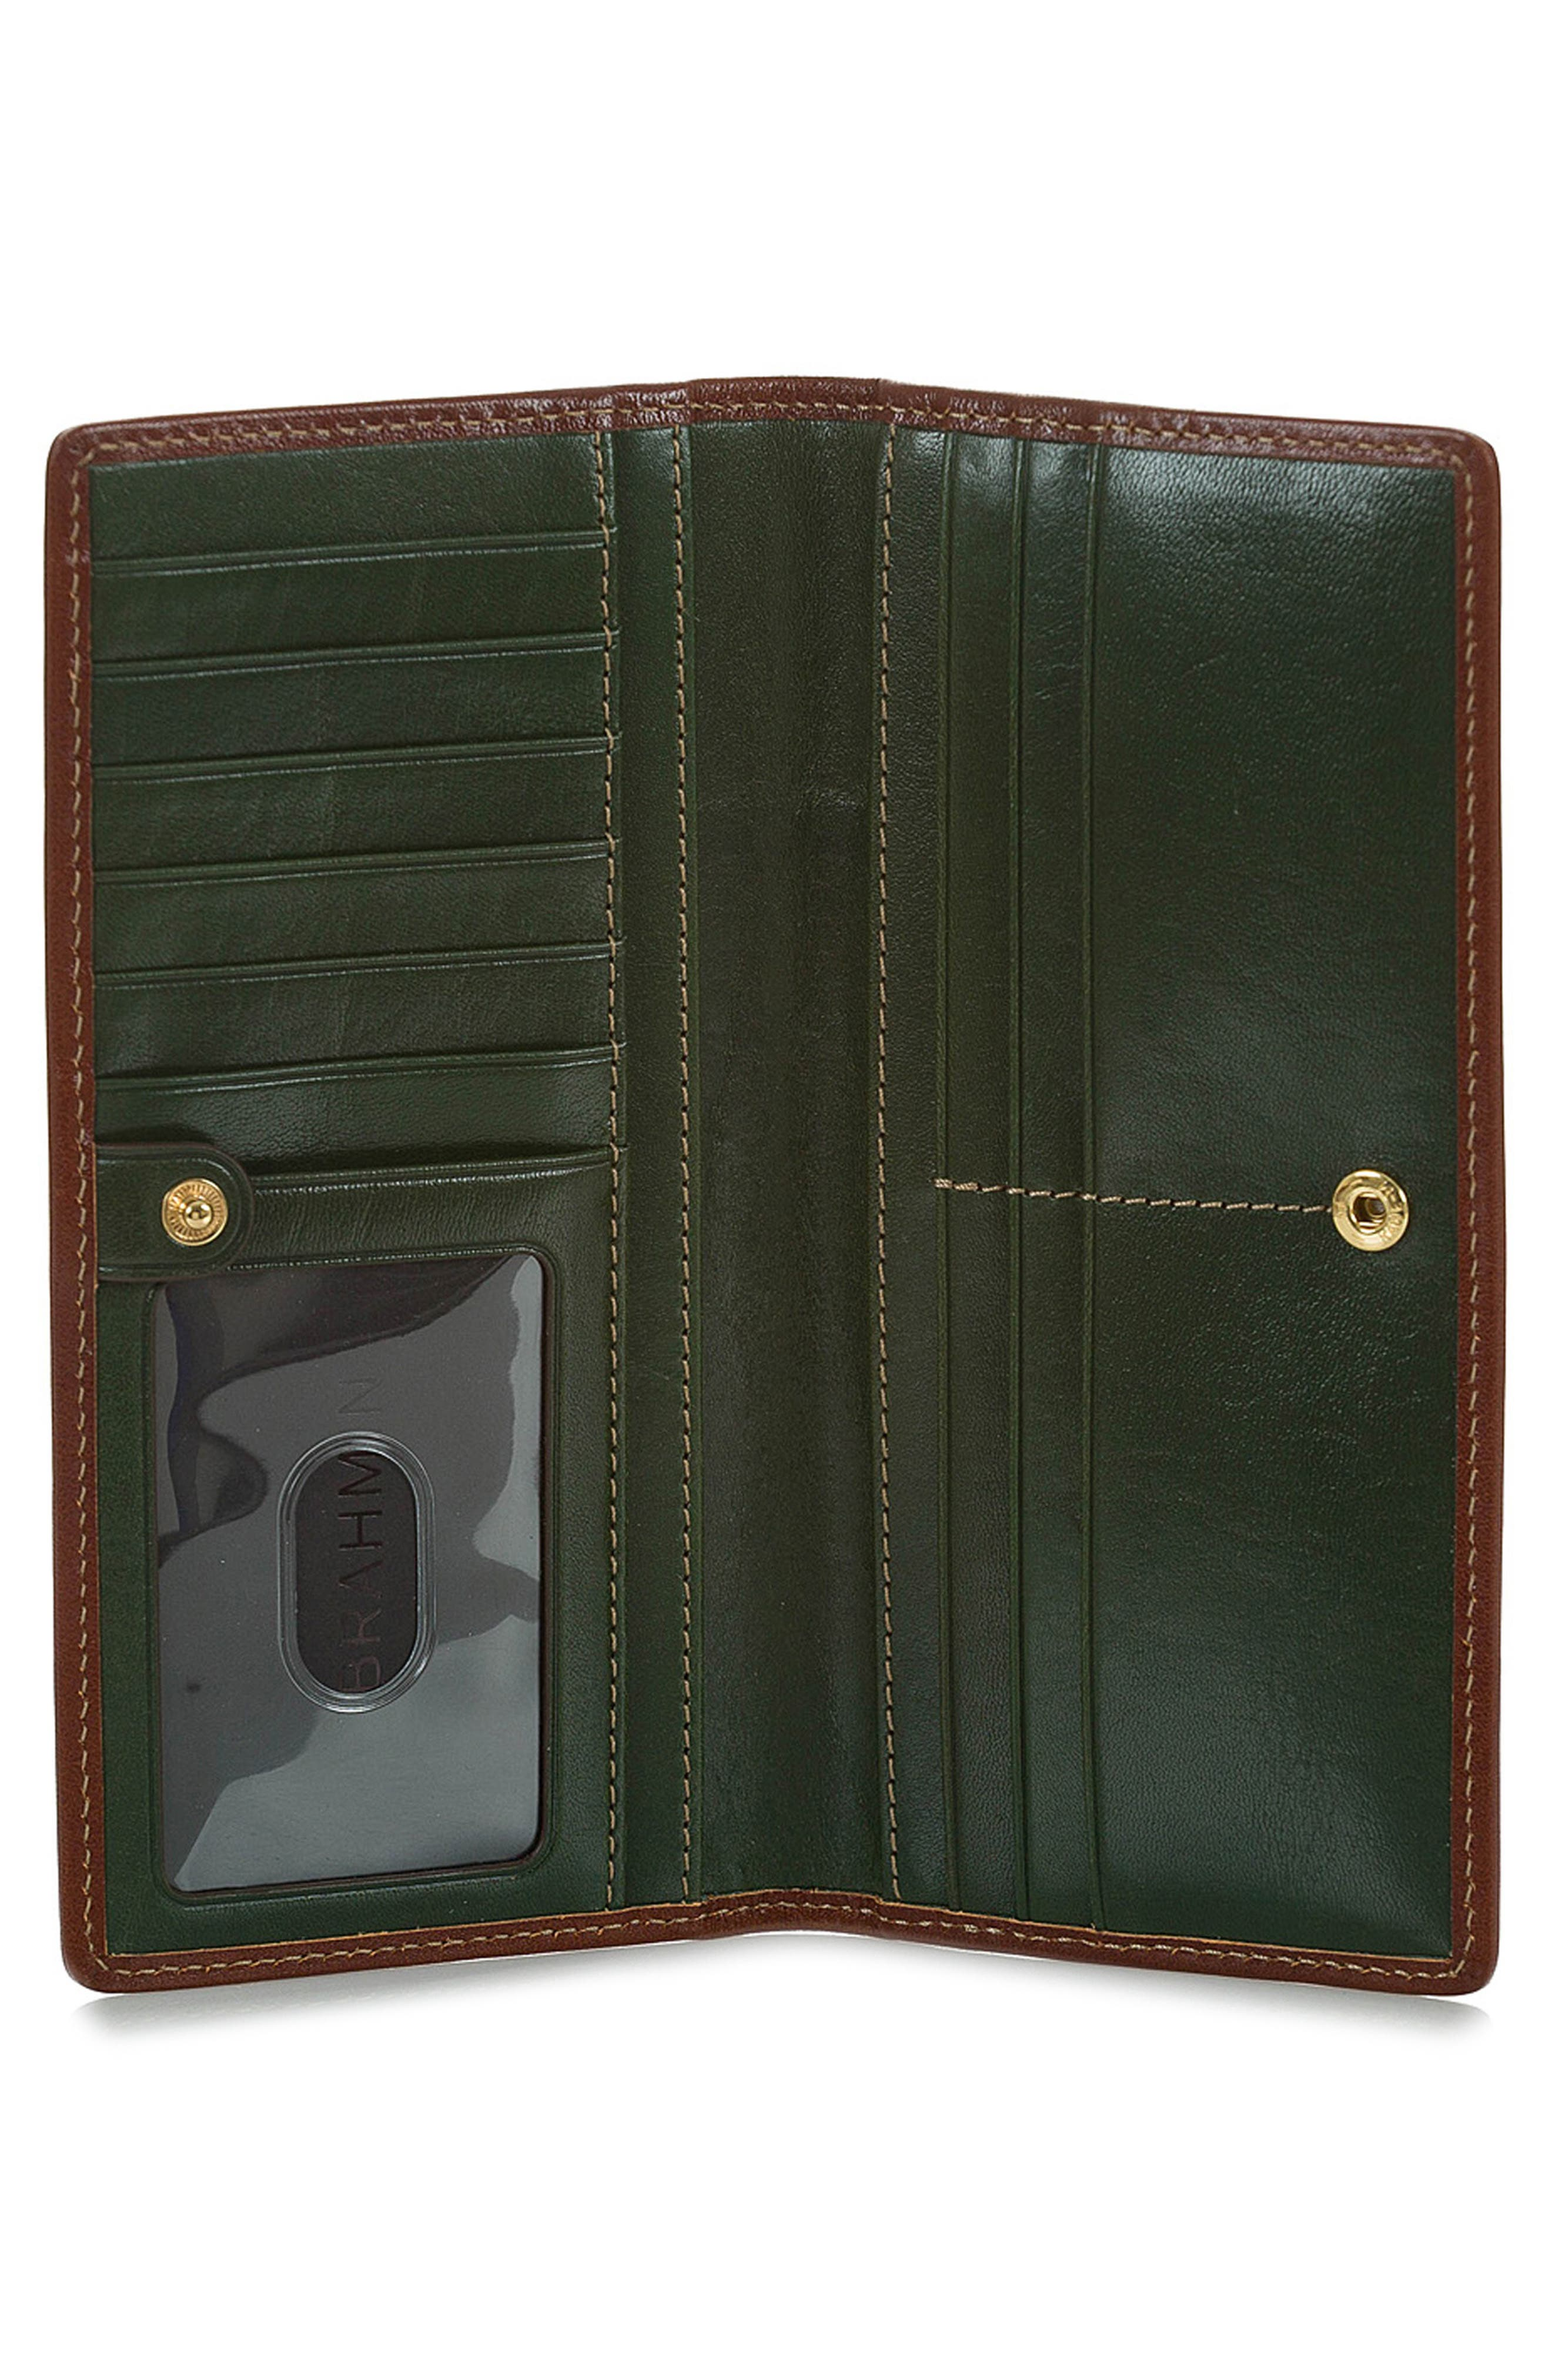 Ady Leather Wallet,                             Alternate thumbnail 2, color,                             HUNTER